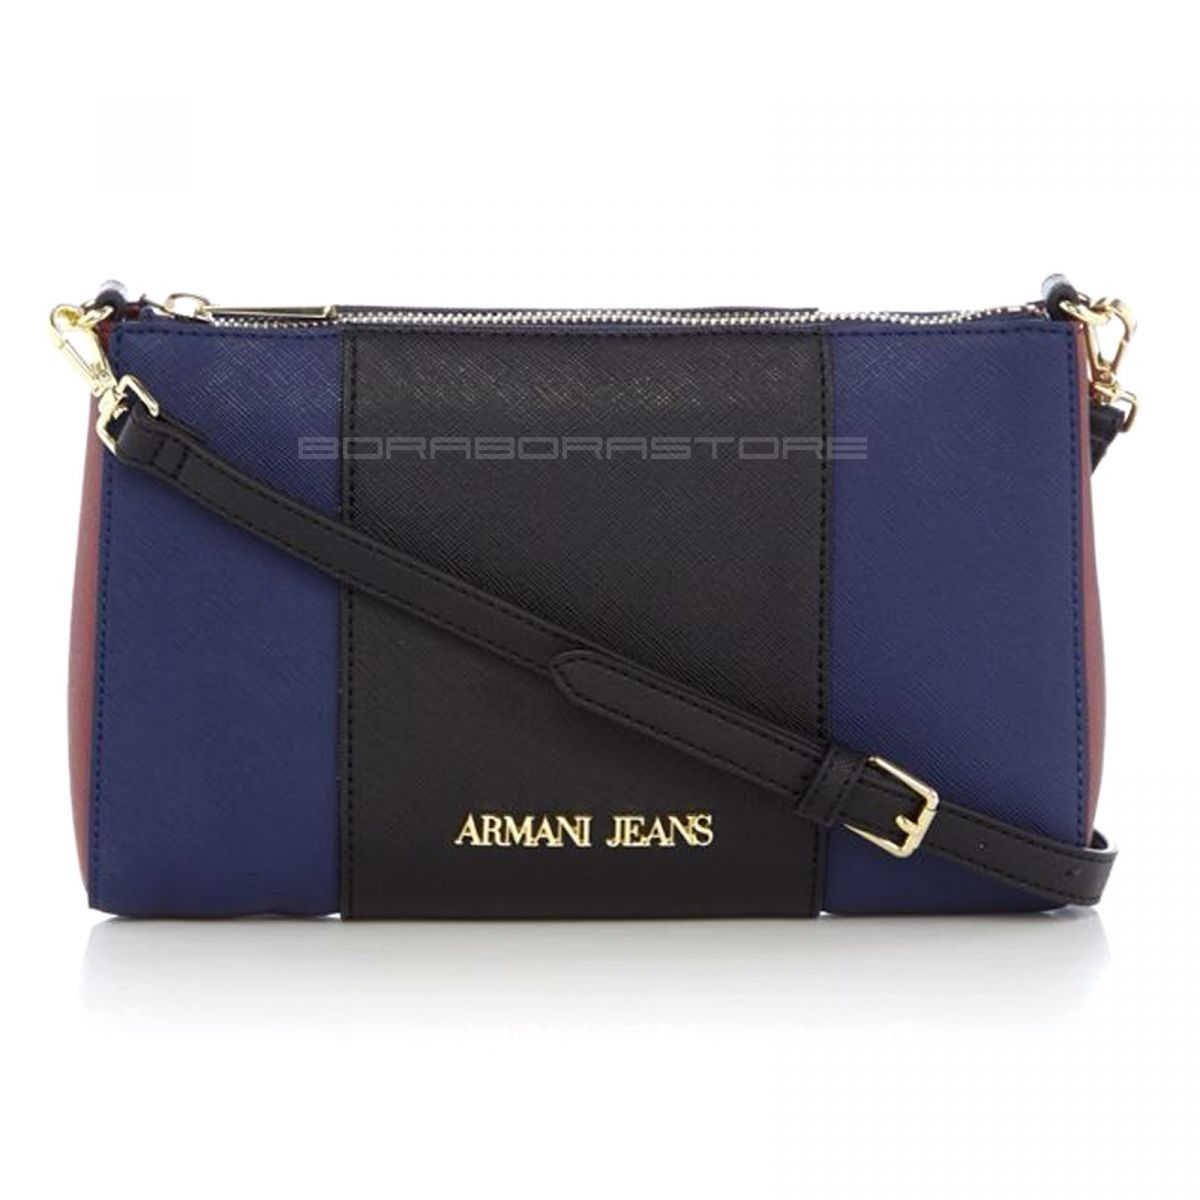 armani jeans damen bag frauen tasche blau ebay. Black Bedroom Furniture Sets. Home Design Ideas